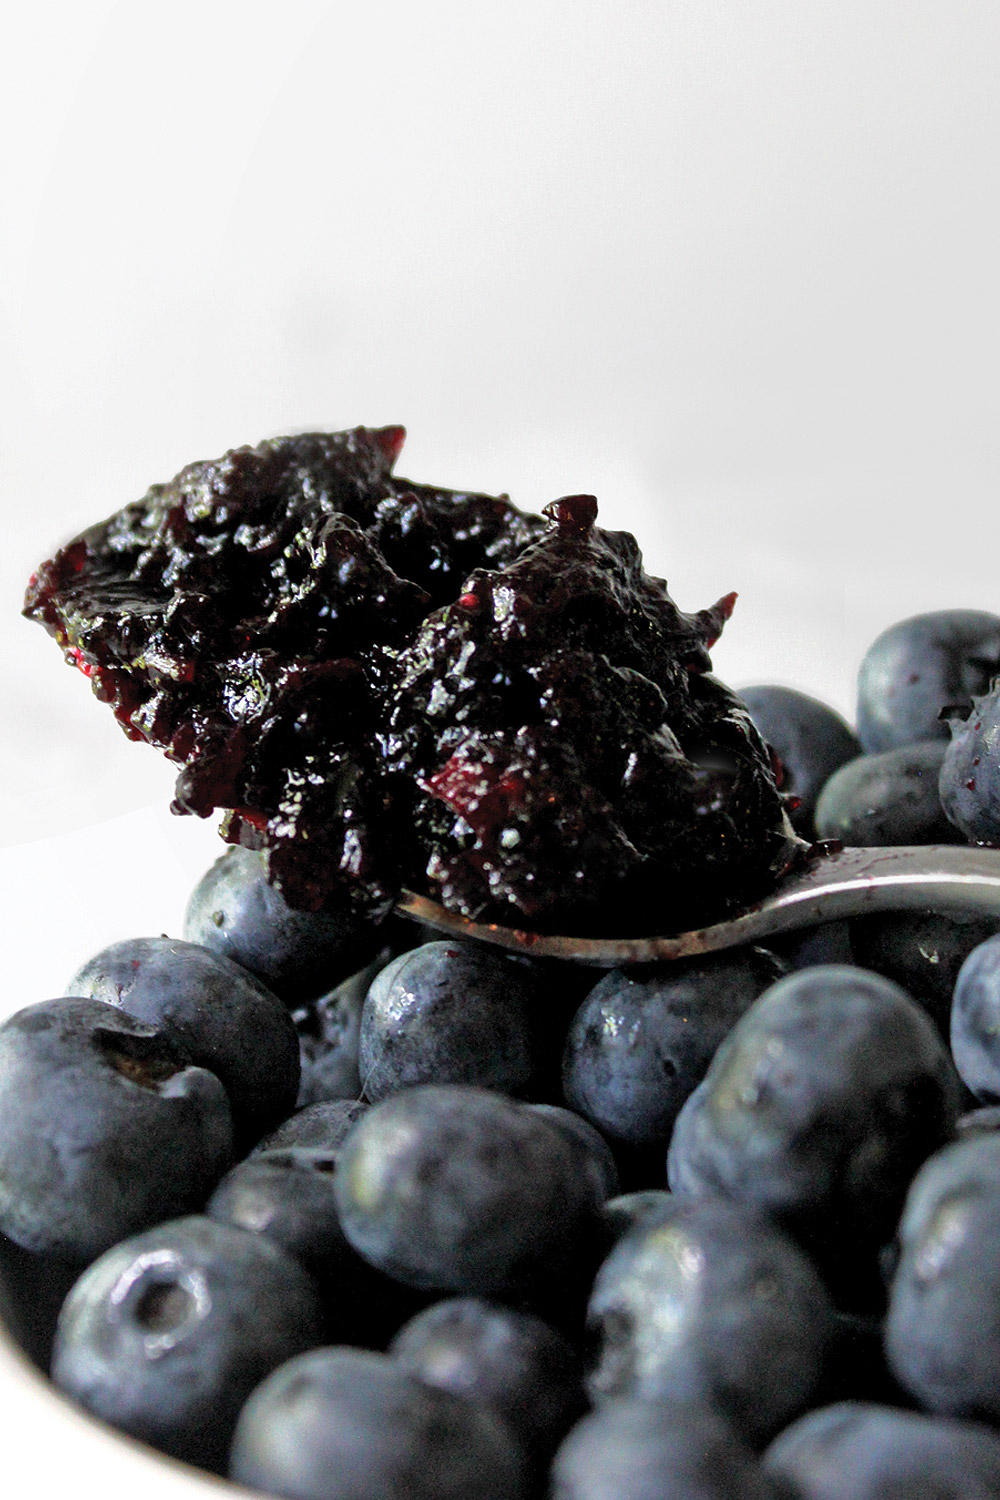 Spoon of Friends Drift Inn Blueberry Cardamom Jam on top of a bowl of fresh blueberries